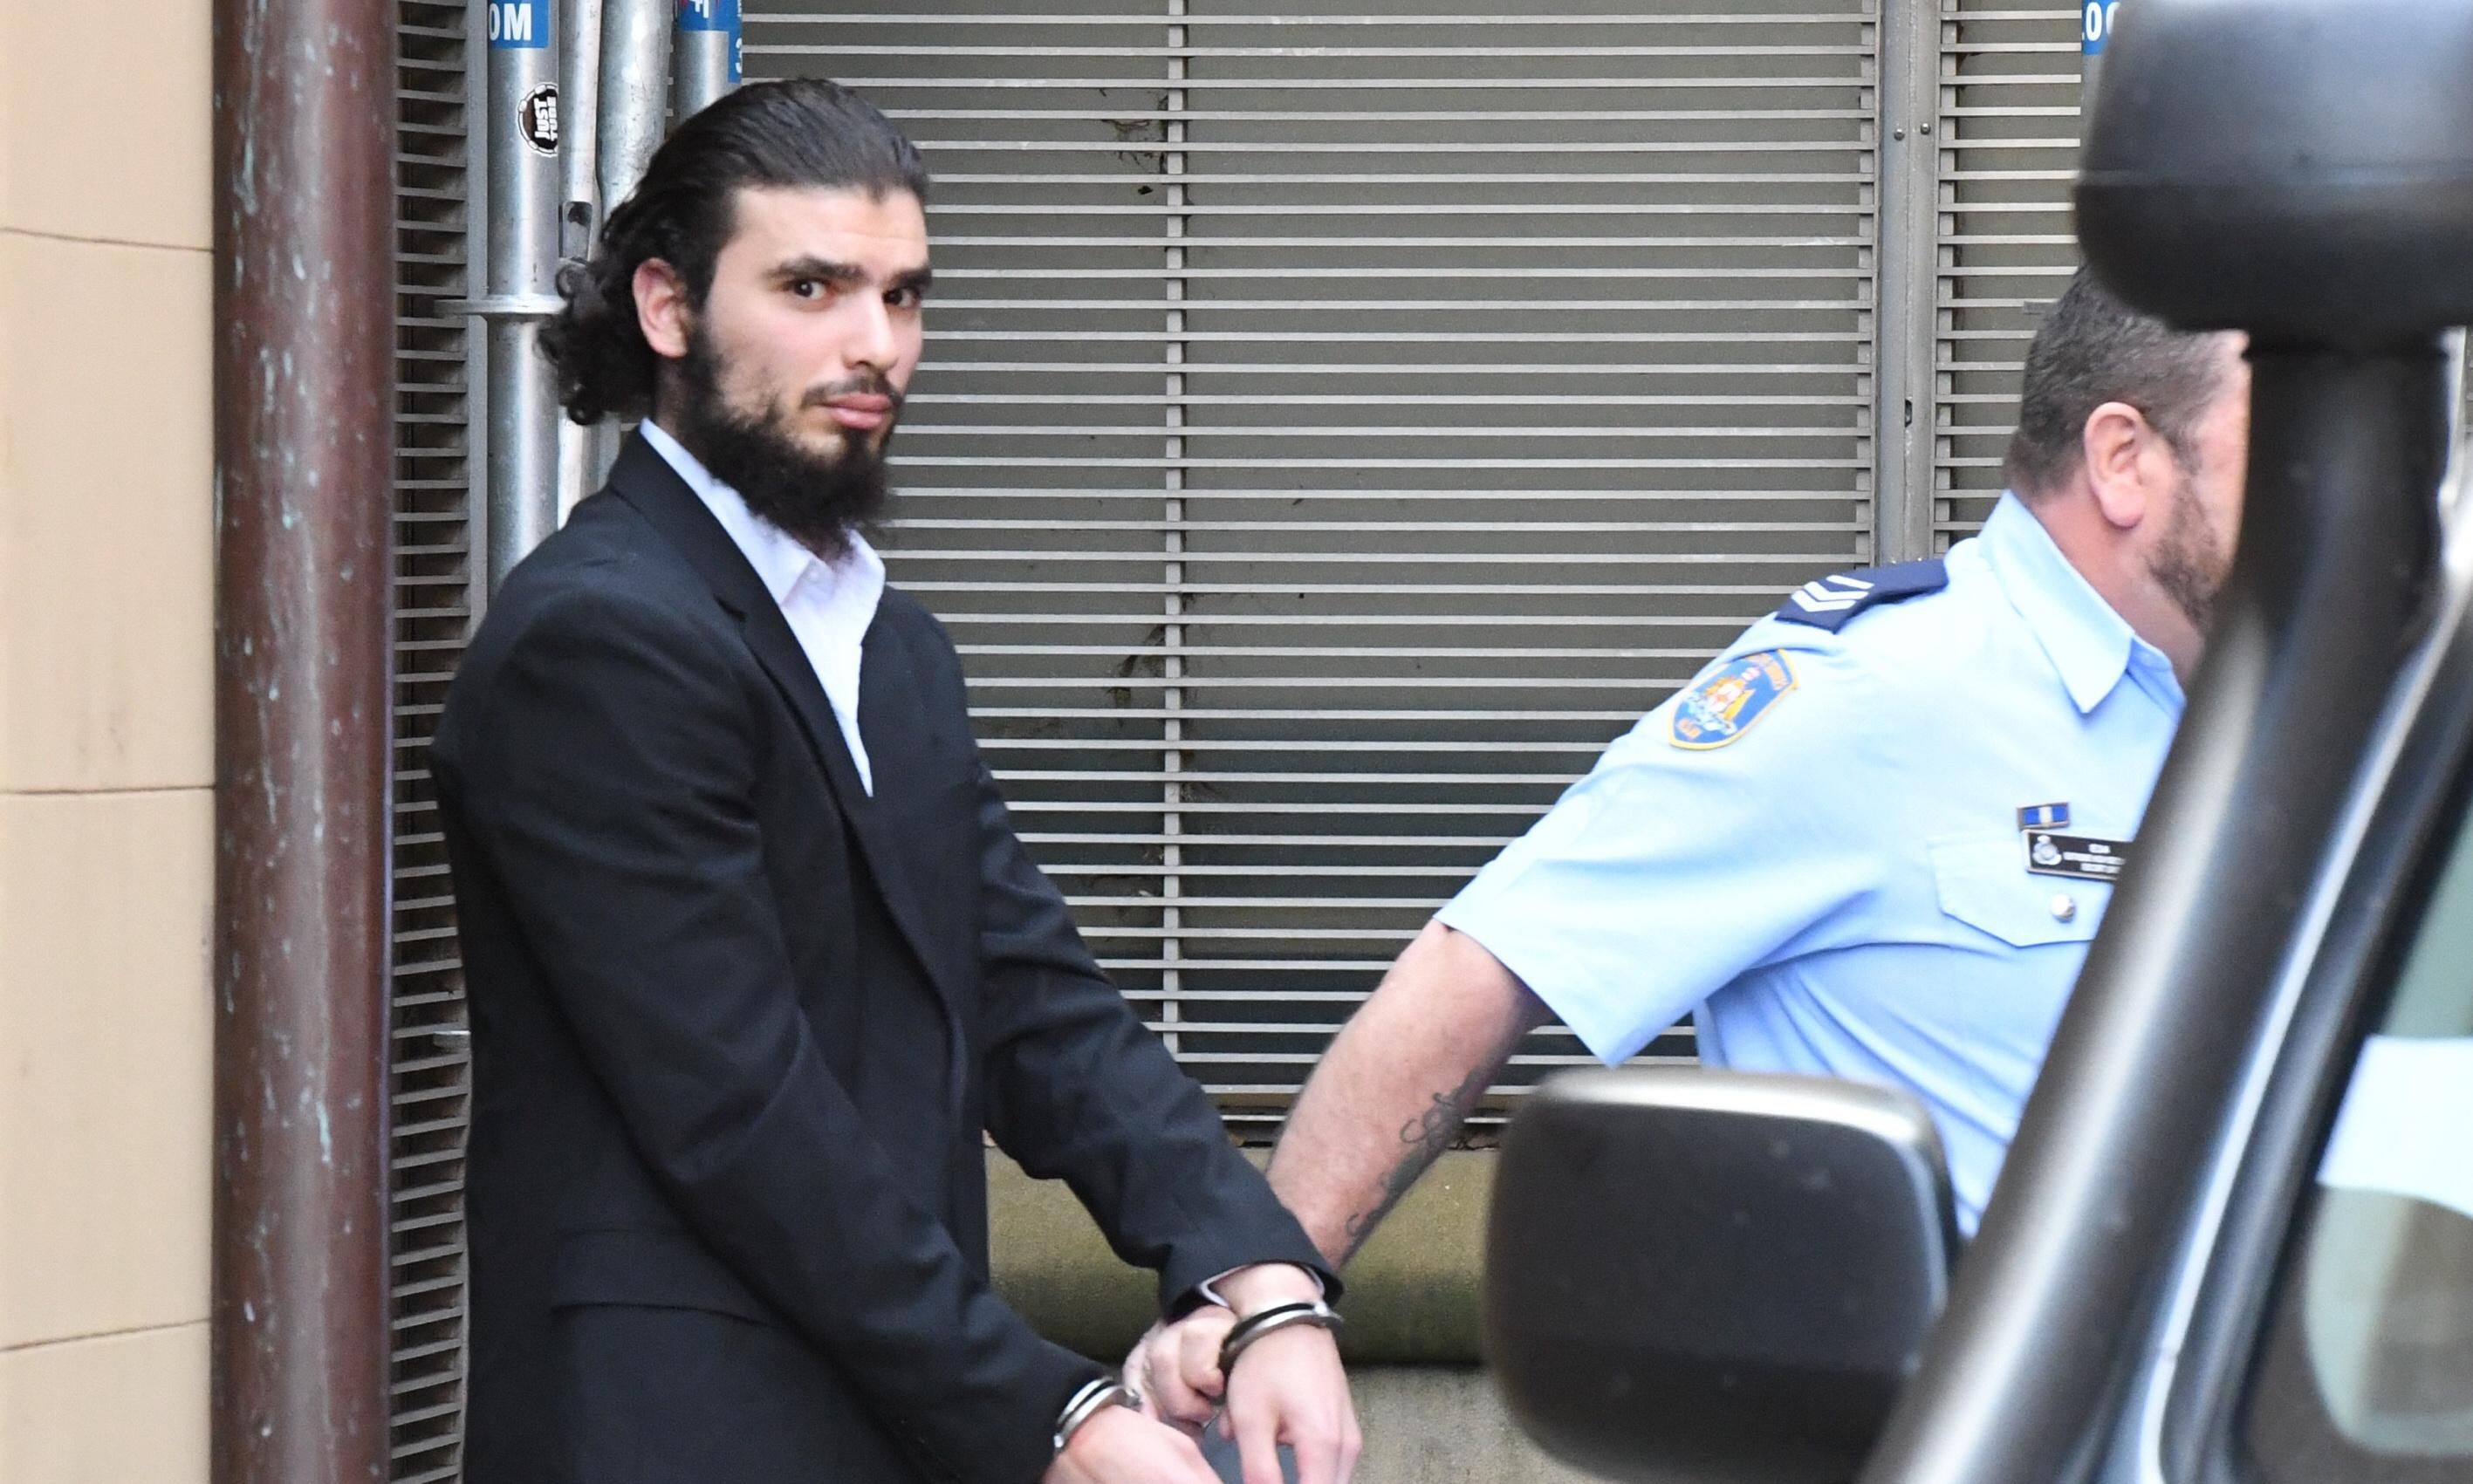 Man stopped at Sydney airport on way to join Isis released on good behaviour bond